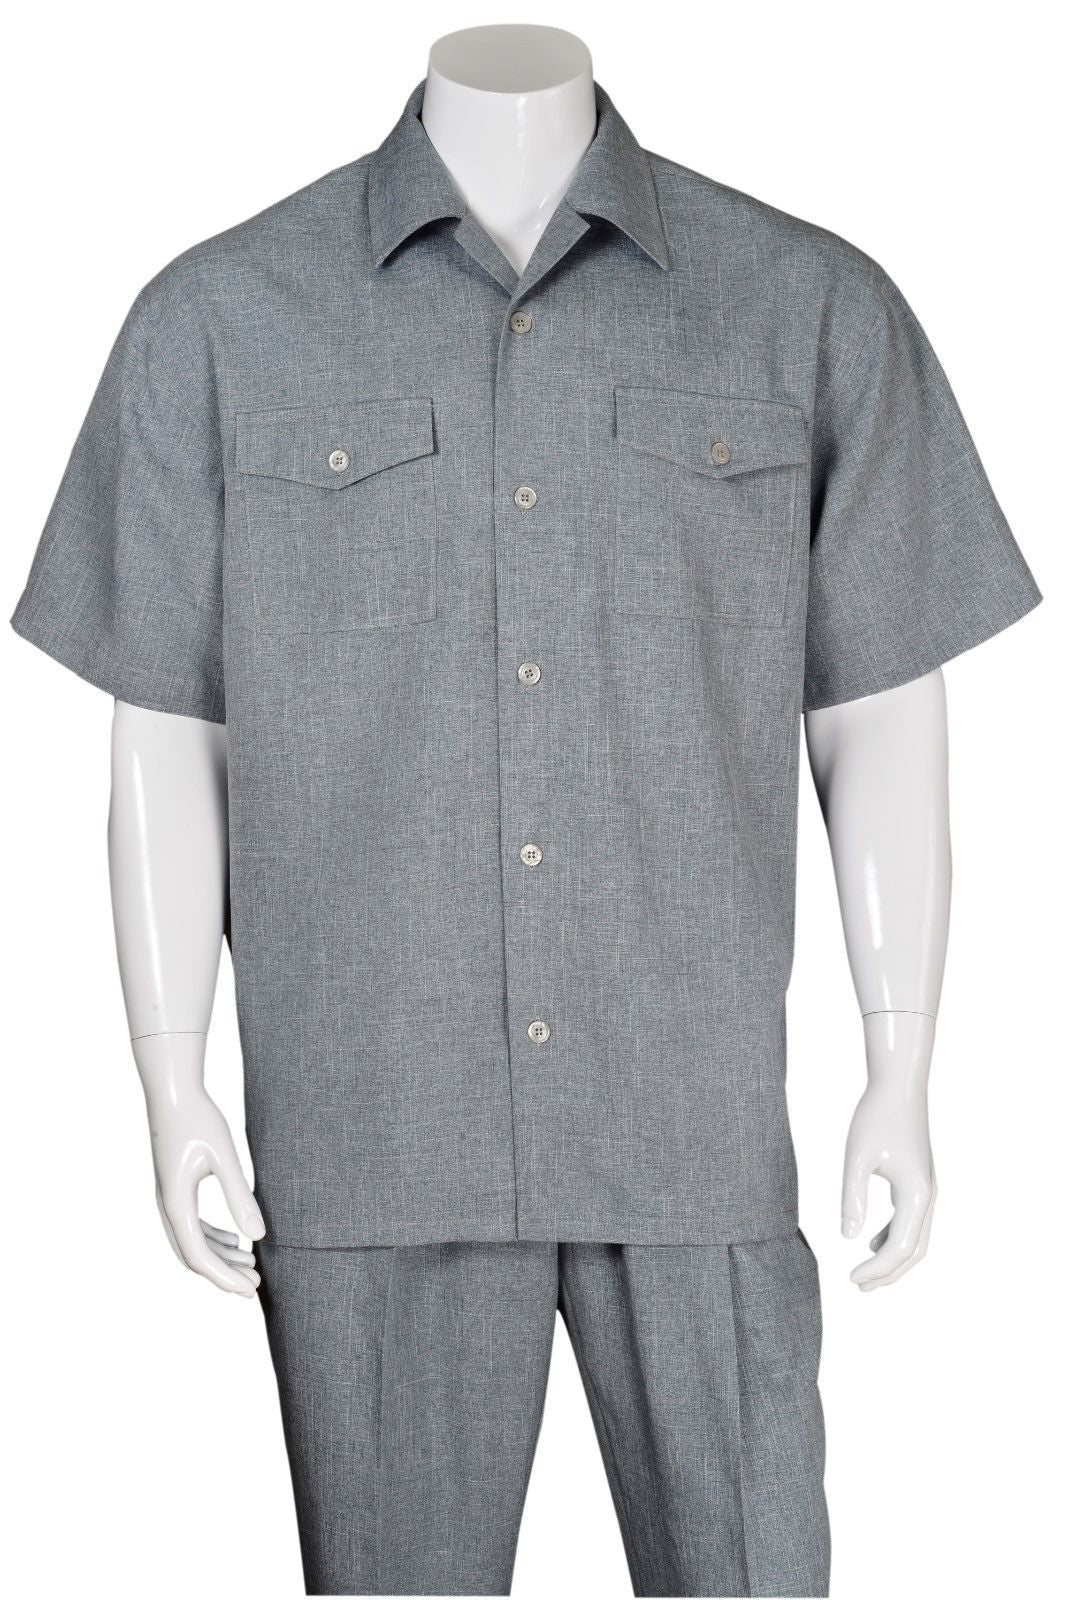 Fortino Landi Walking Set M2961-Grey - Church Suits For Less